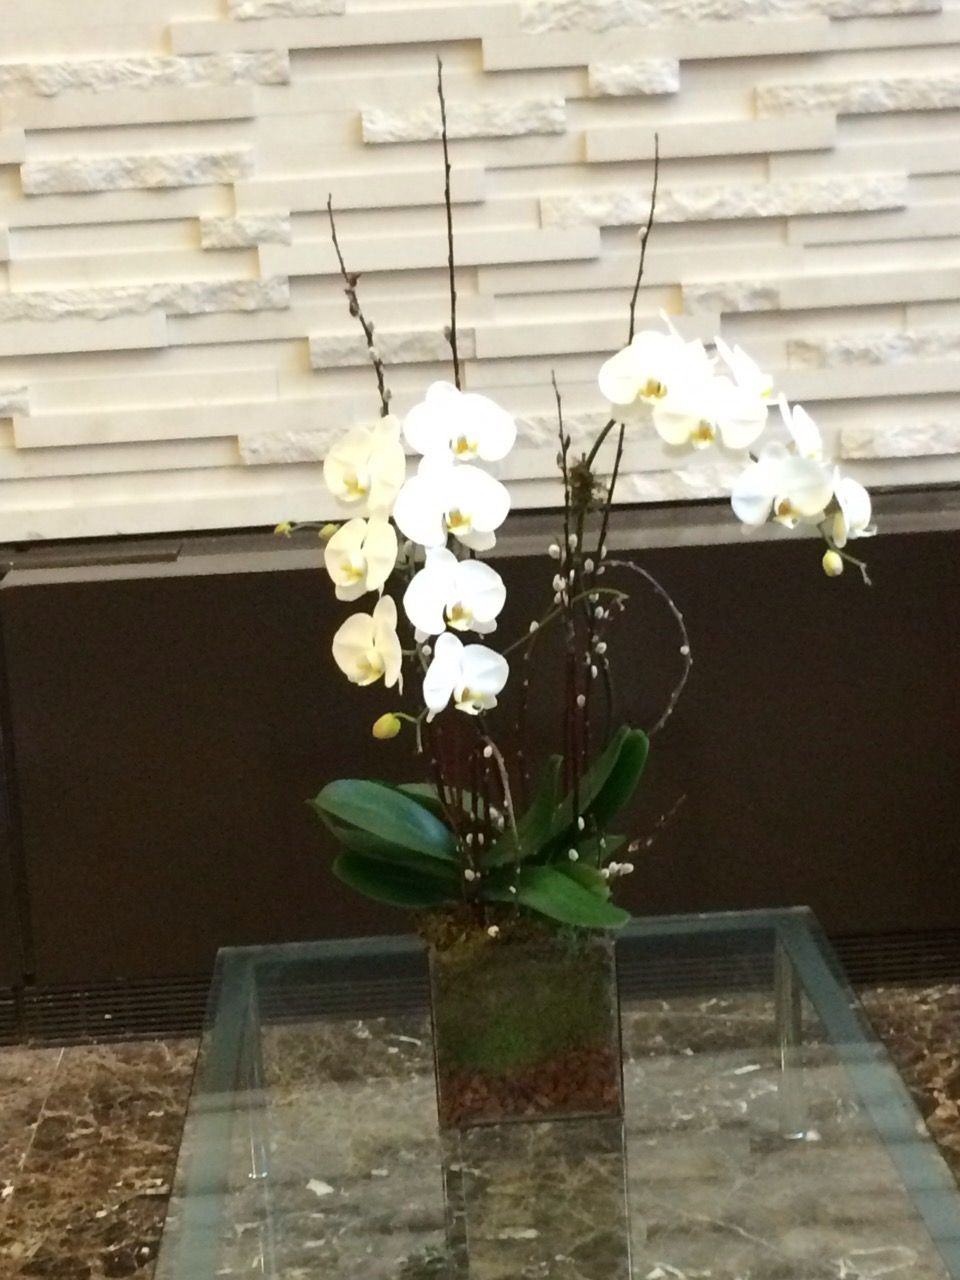 Lovely Orchid The Best Elegant And Stylish Decoration For Offices Hotels Weekly Flowers Office Lobby Orchids Arrangement Florist